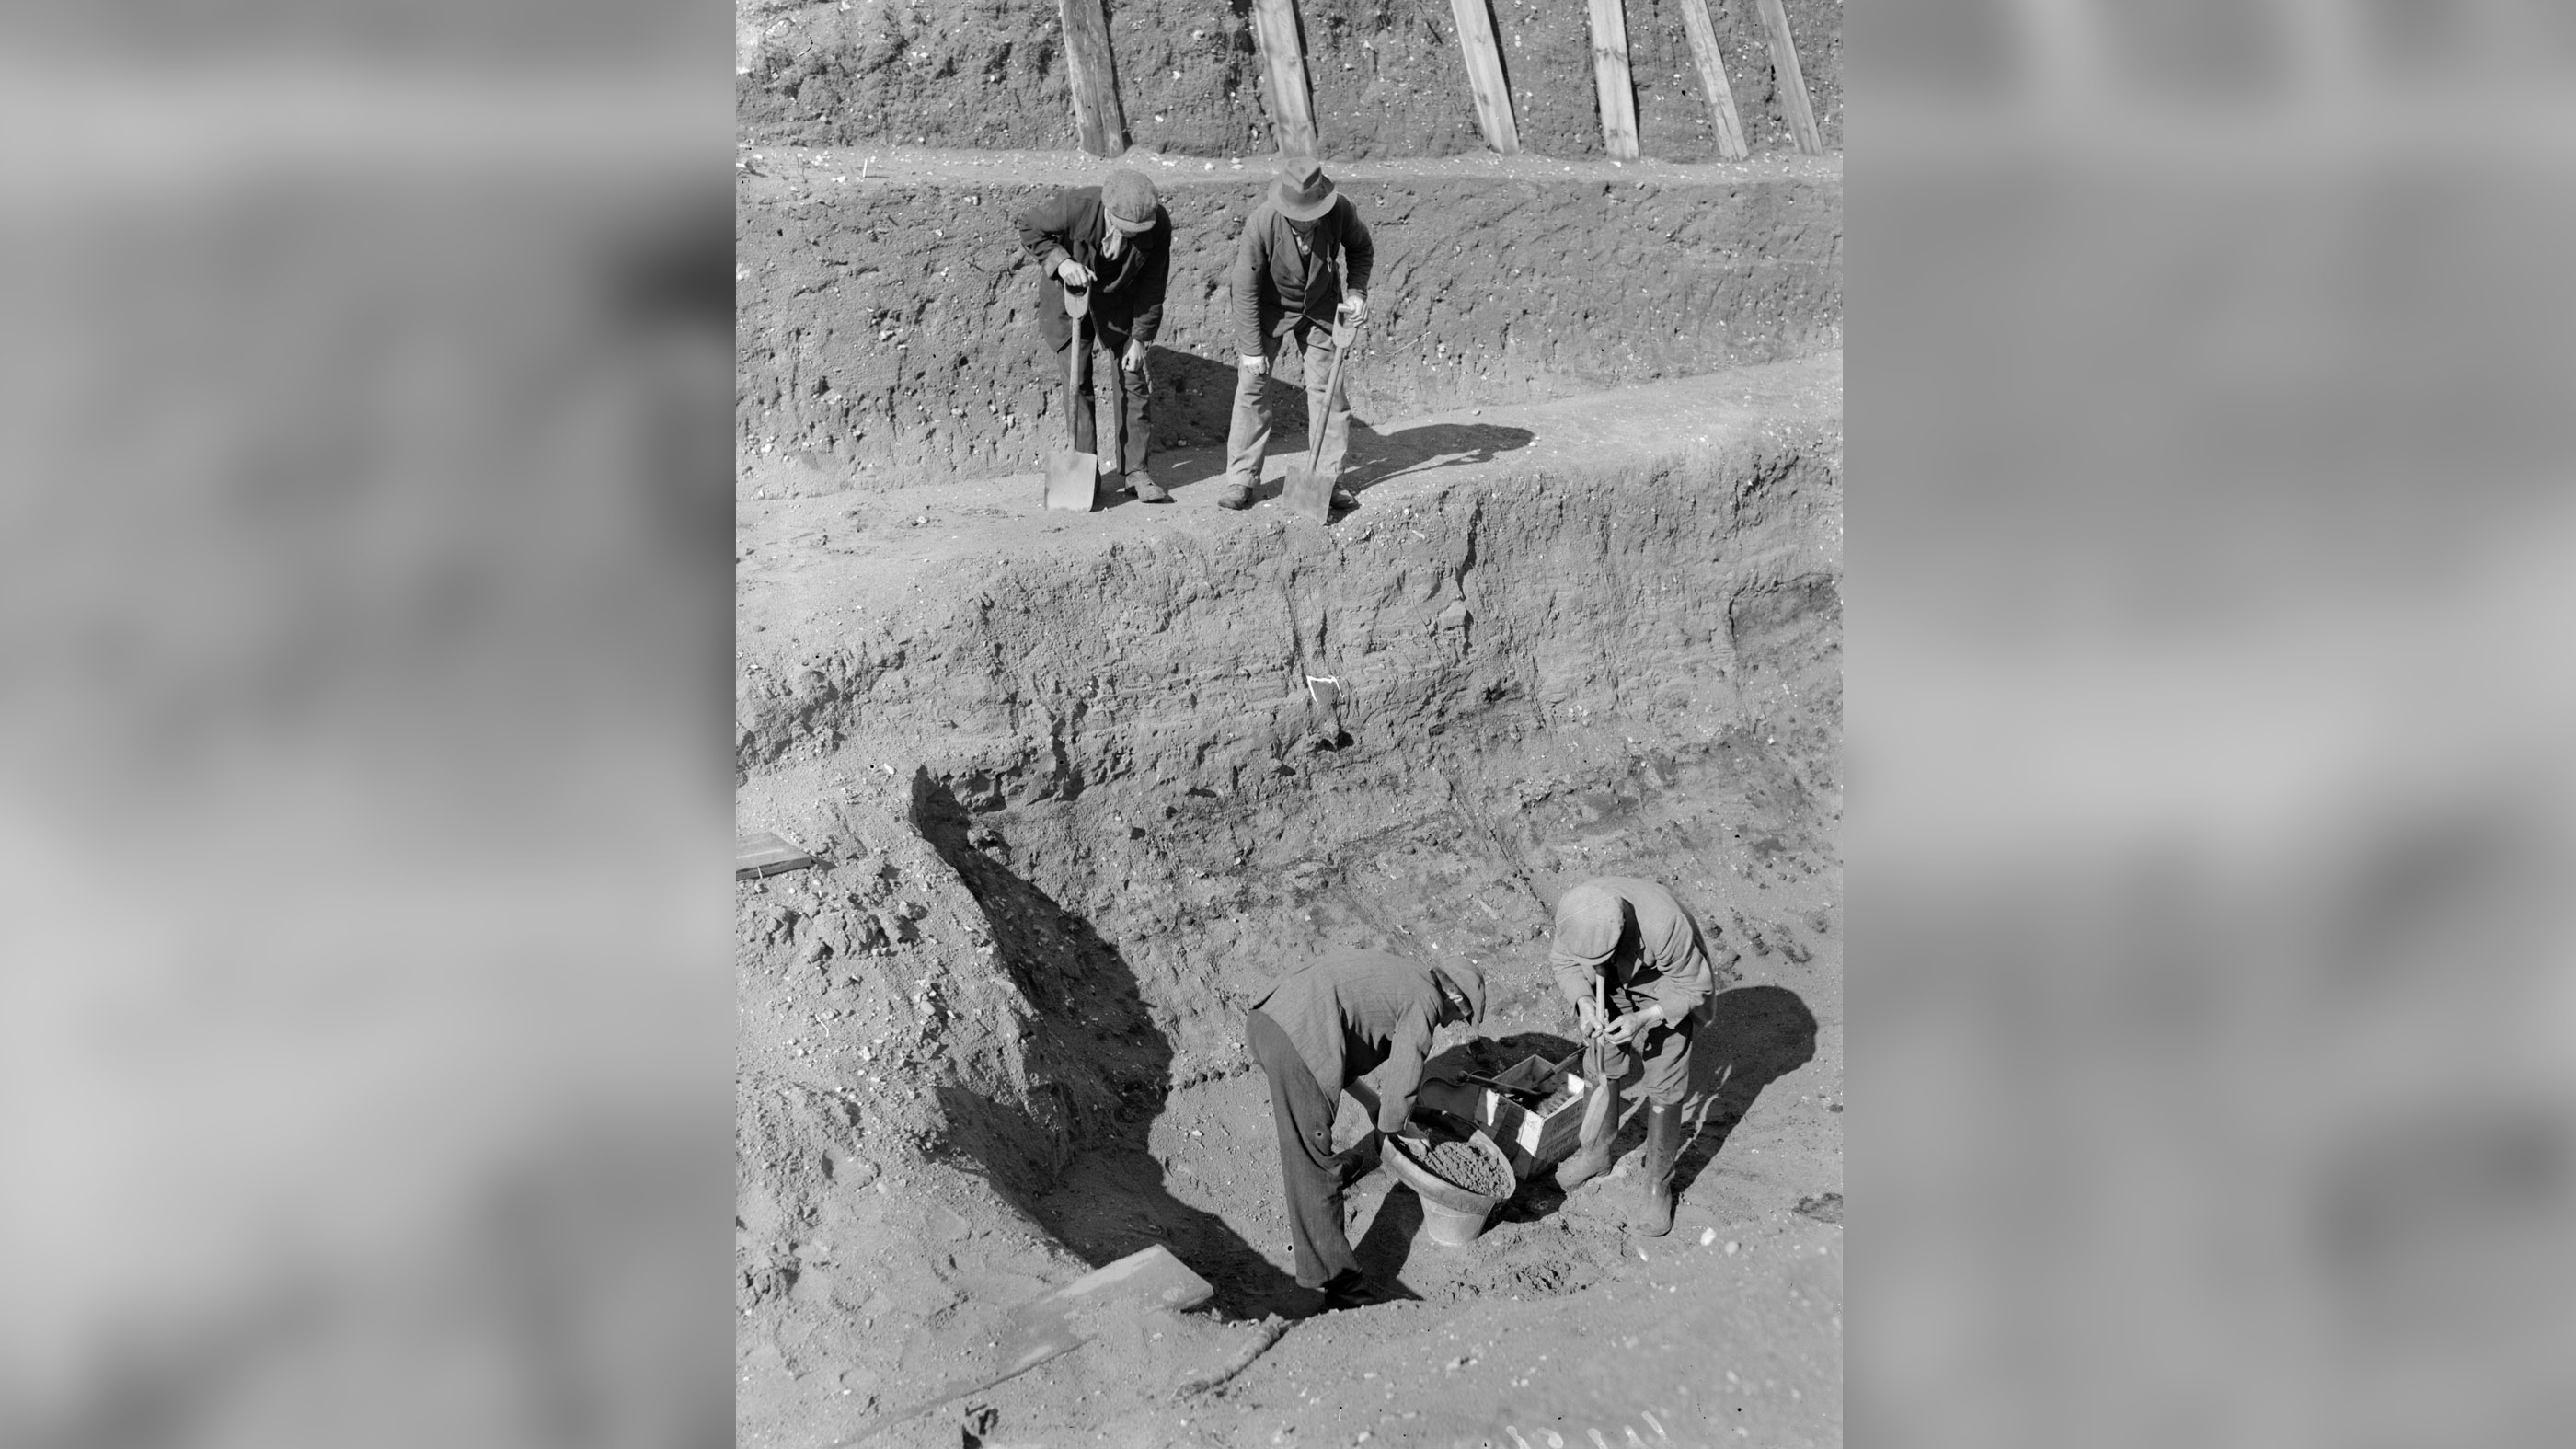 On July 31, 1939, workmen sift through earth at the bottom of the excavation of the Anglo-Saxon burial ship at Sutton Hoo in Suffolk, England.